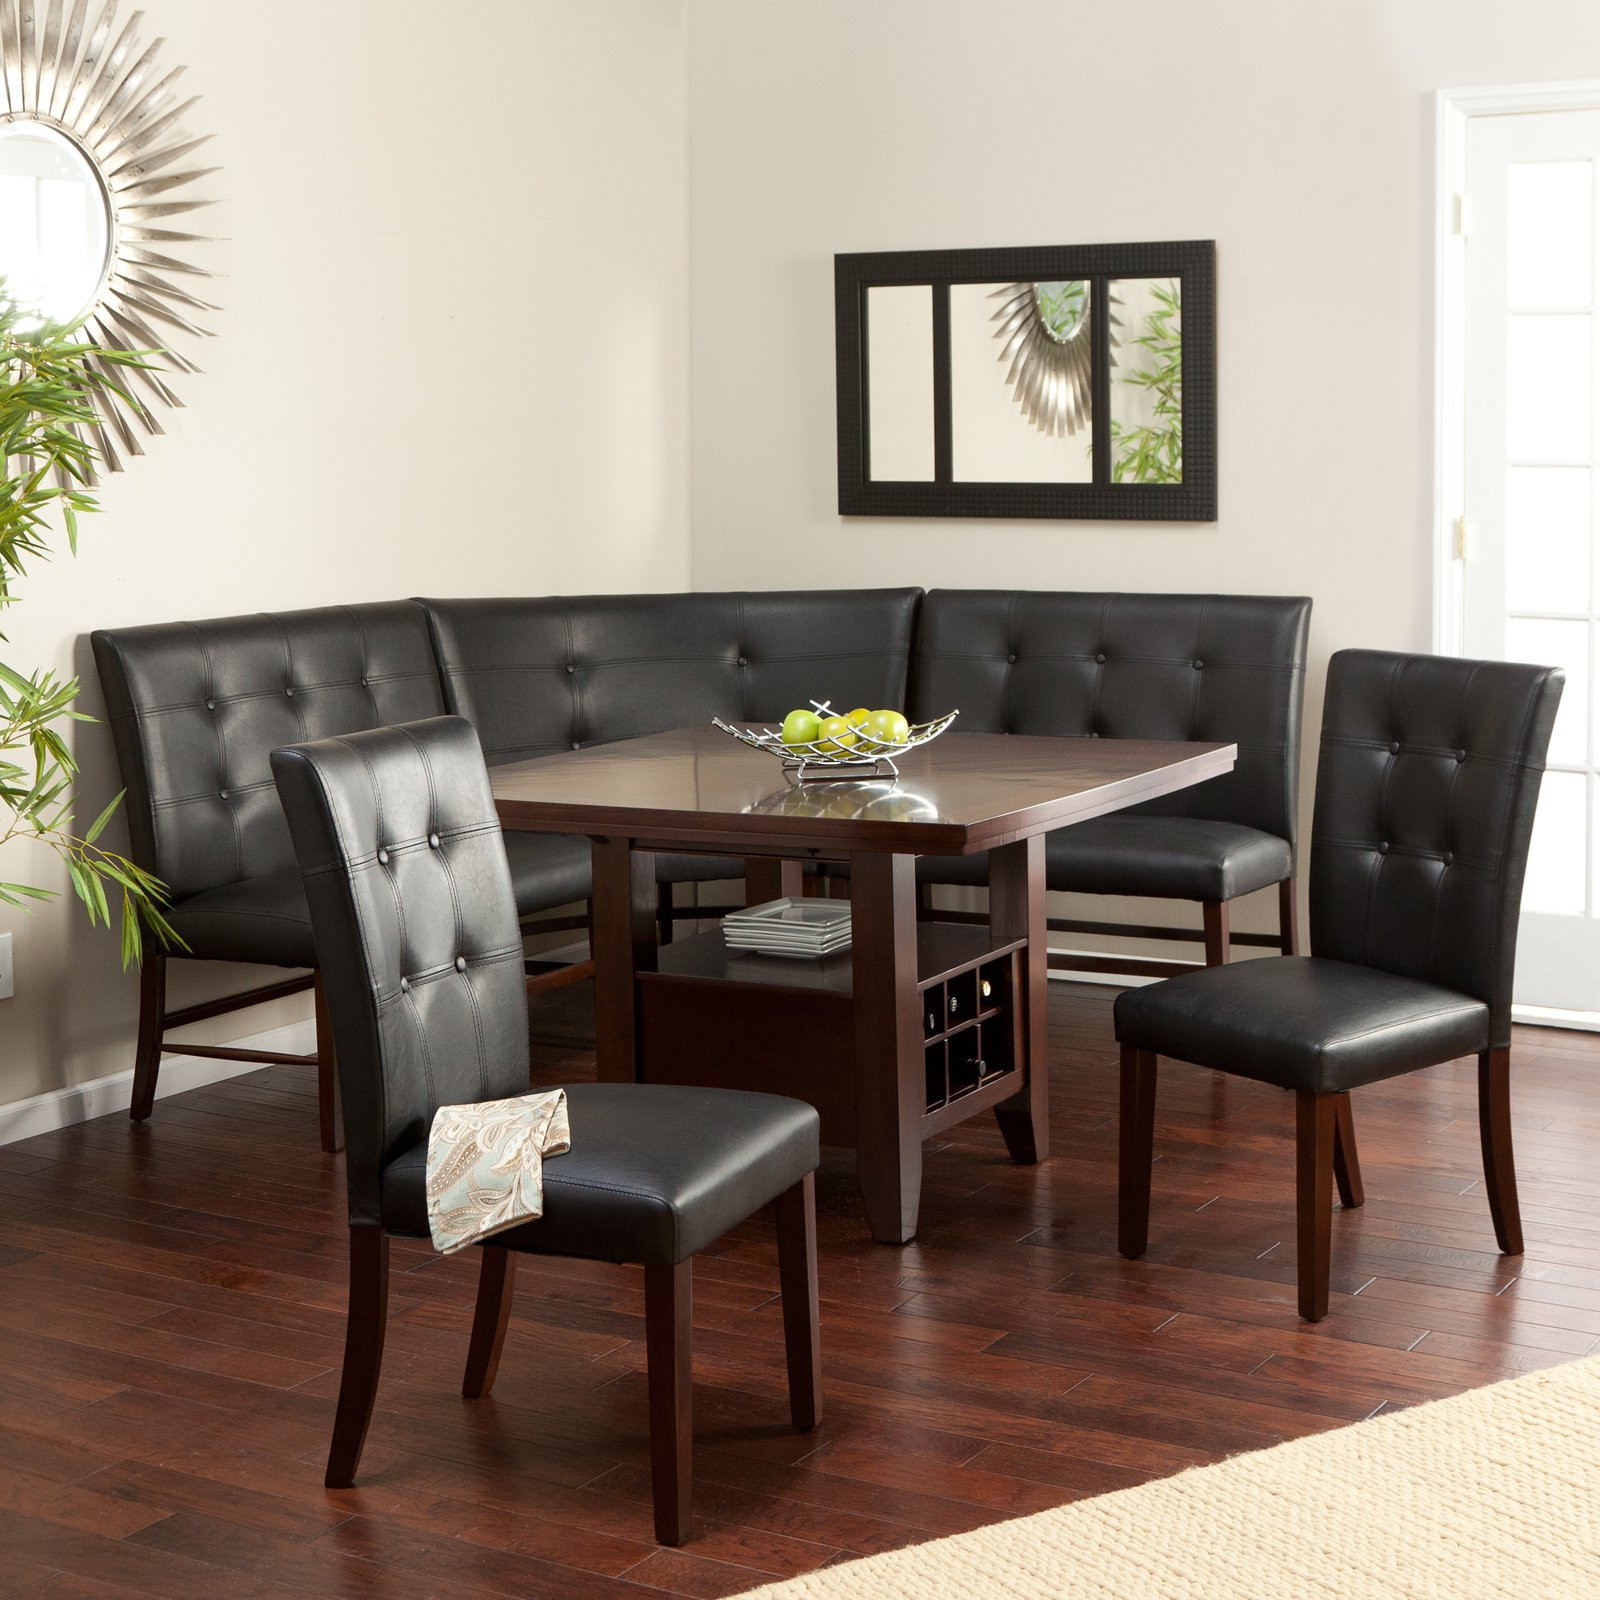 Corner Booth Dining Sets Visualhunt, Booth Dining Room Table